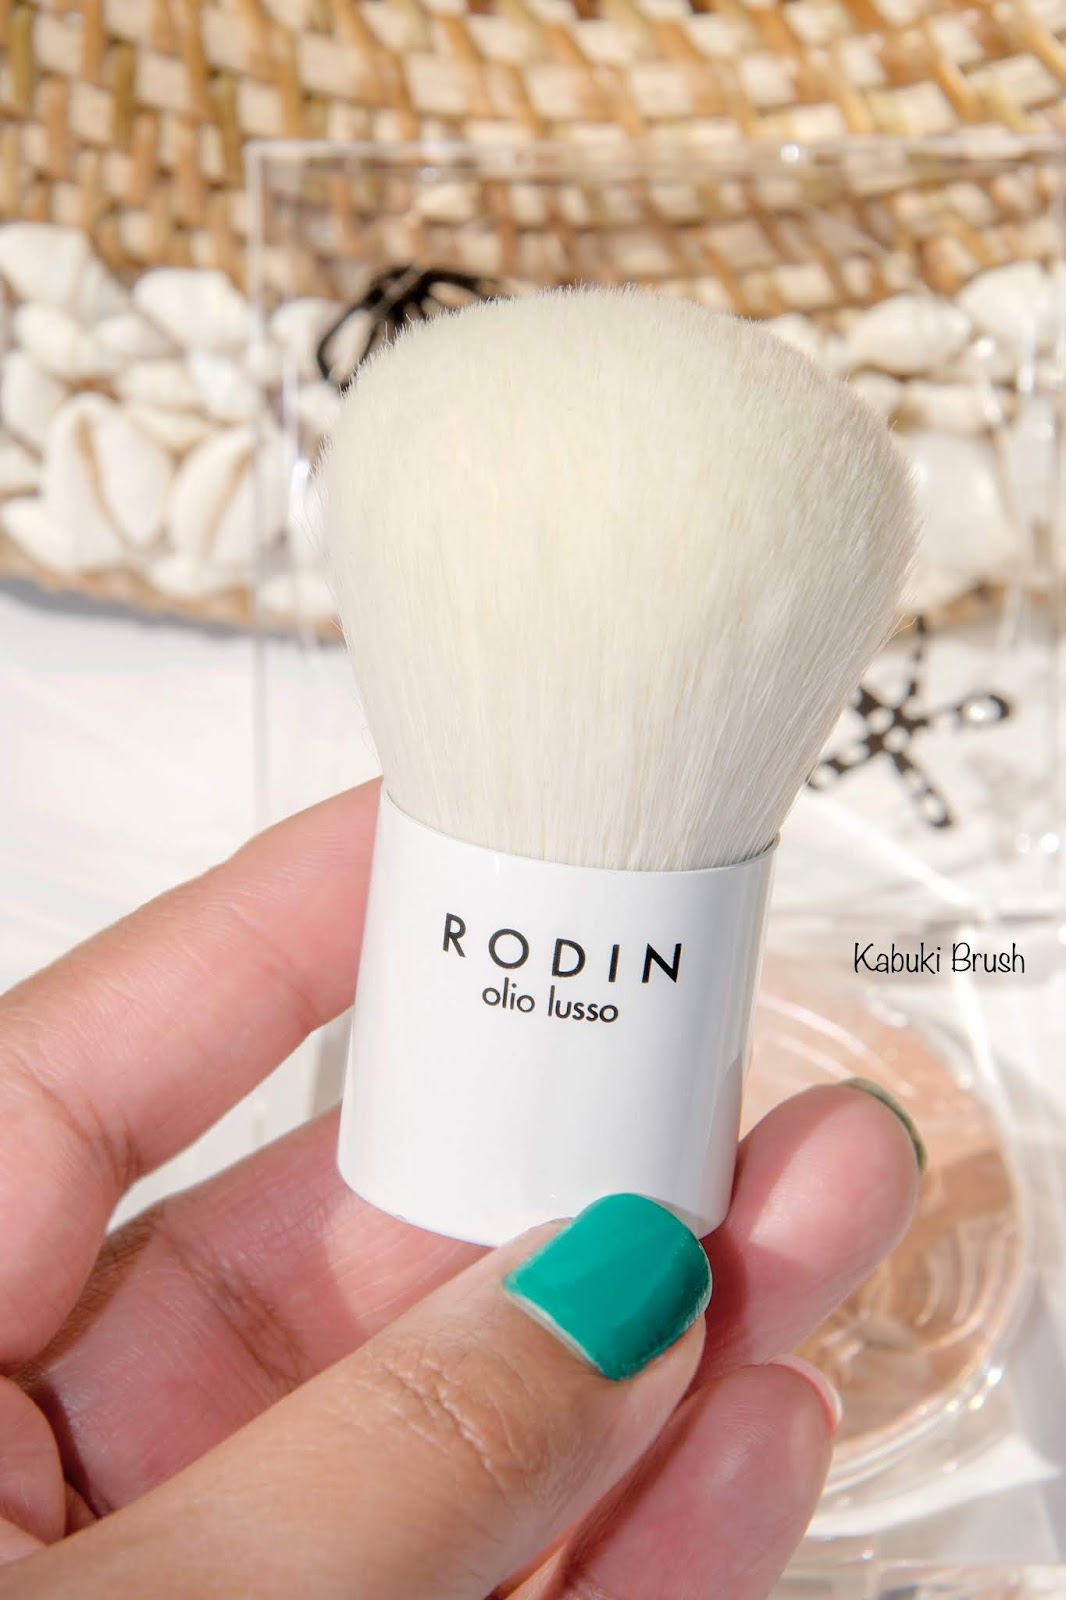 Rodin Olio Lusso Luxury Mermaid Kabuki Brush